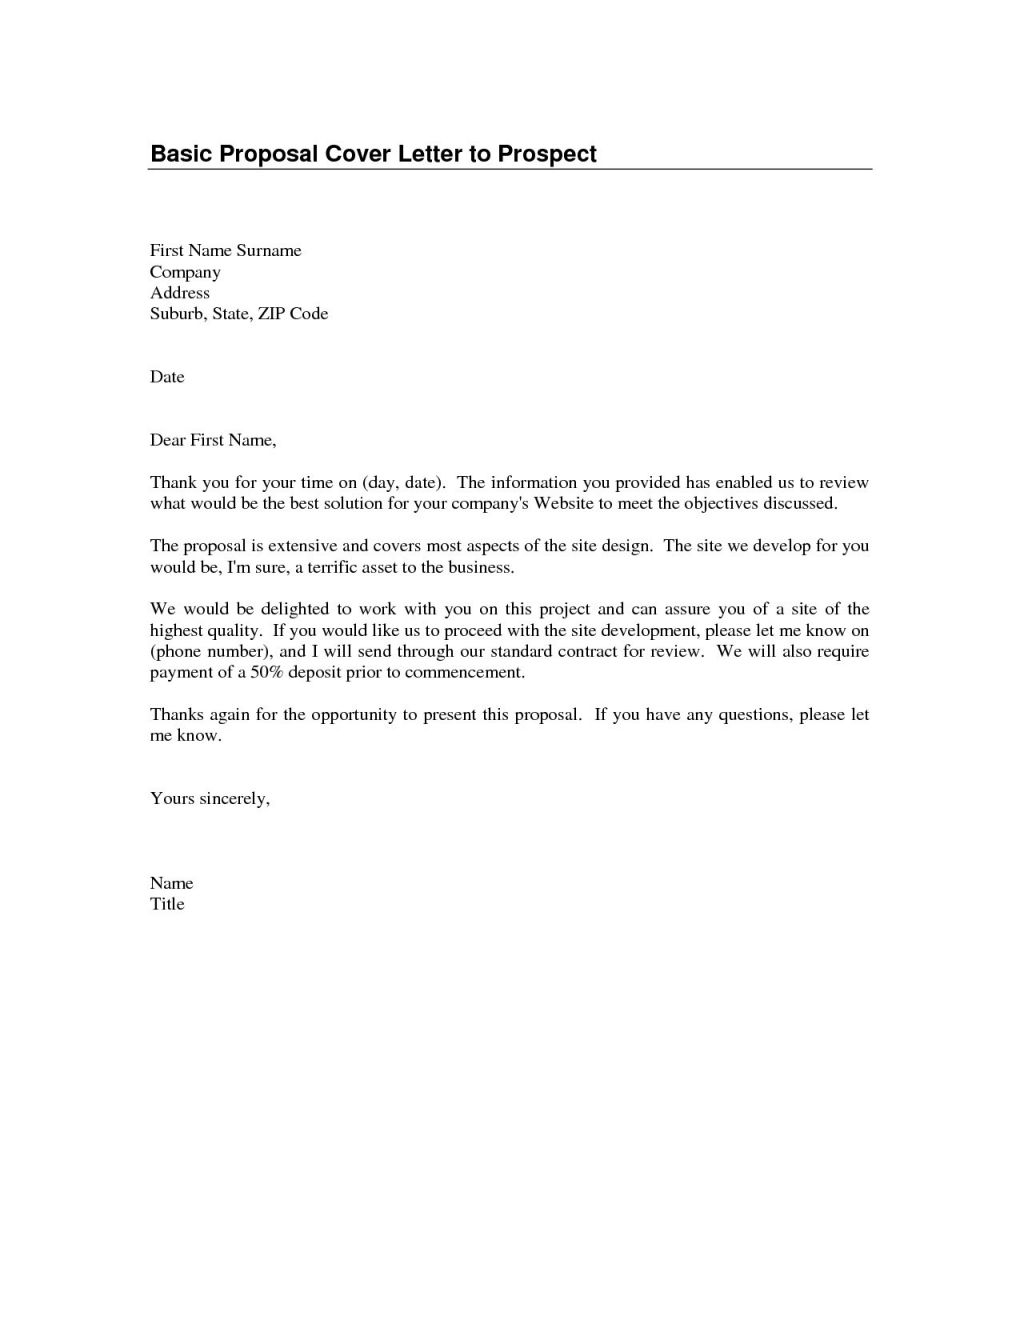 car sales prospecting letter template example-Well Liked Lovely Real Estate Prospecting Letters Samples Your Template Prospecting Letter Templates eb1 5-d